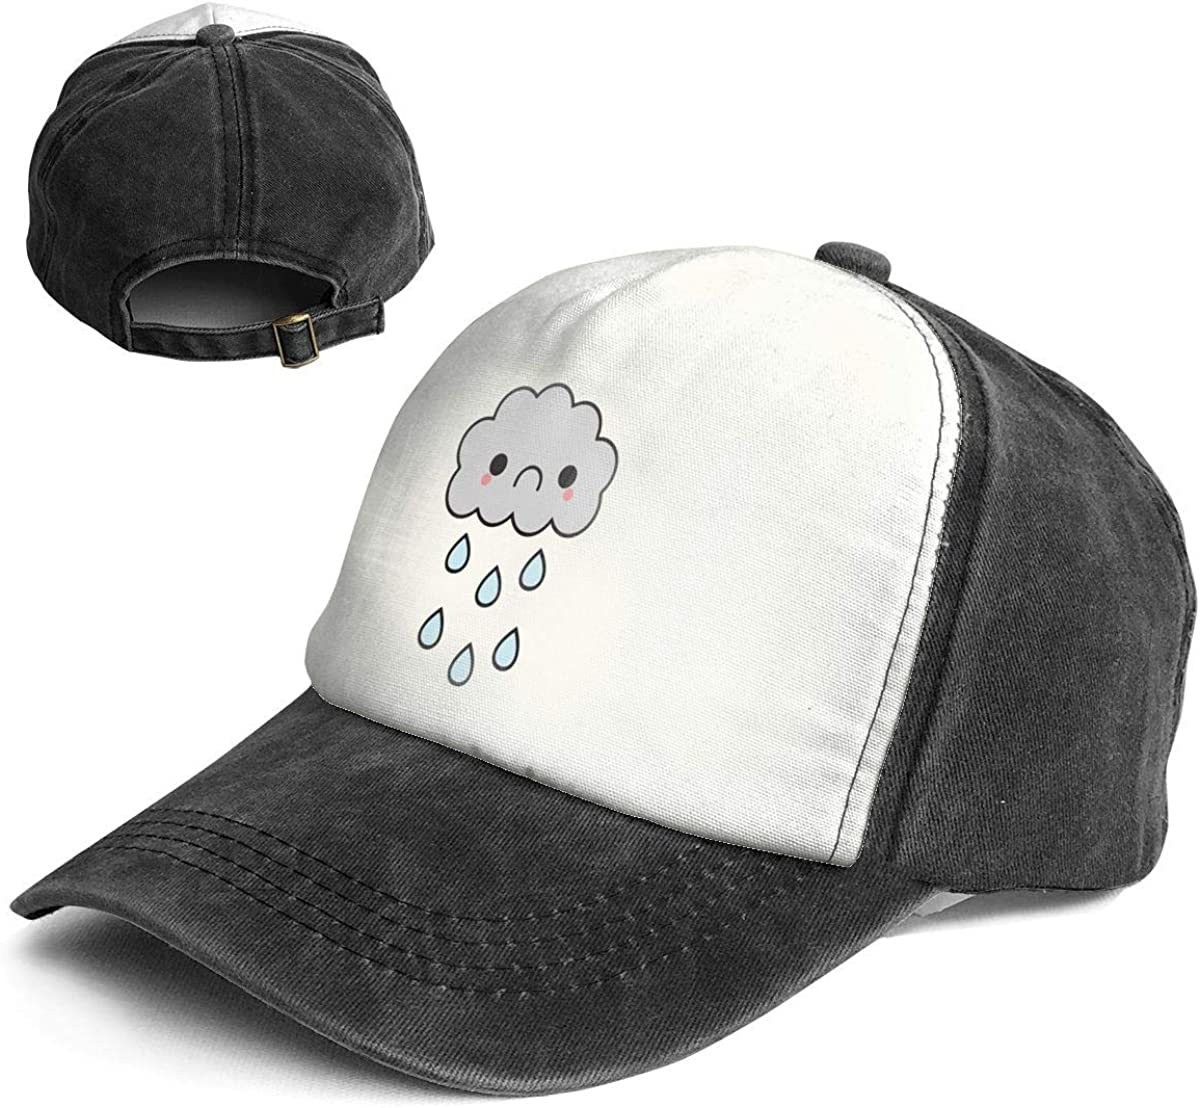 Cute Sad Rain Cloud Trend Printing Cowboy Hat Fashion Baseball Cap for Men and Women Black and White